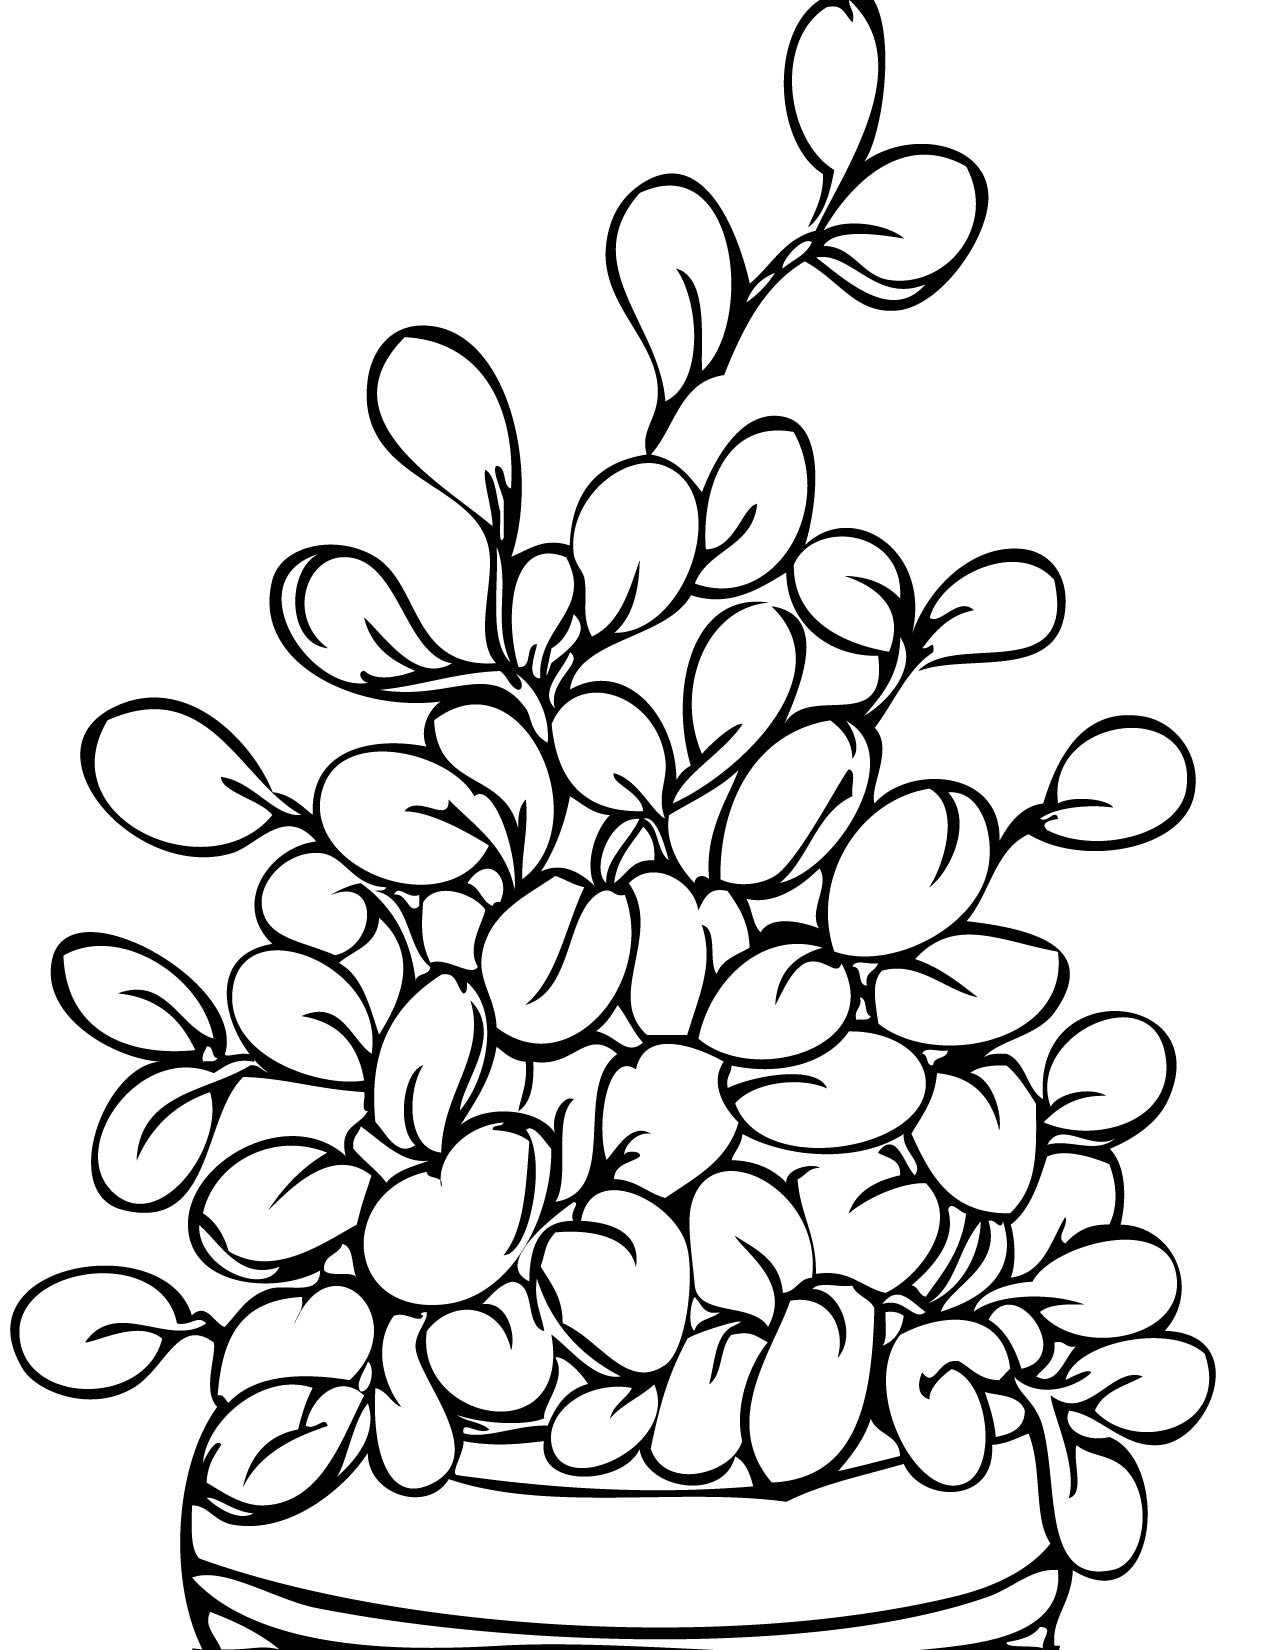 Plant coloring pages to download and print for free | 1275 x 1650 jpeg 239kB